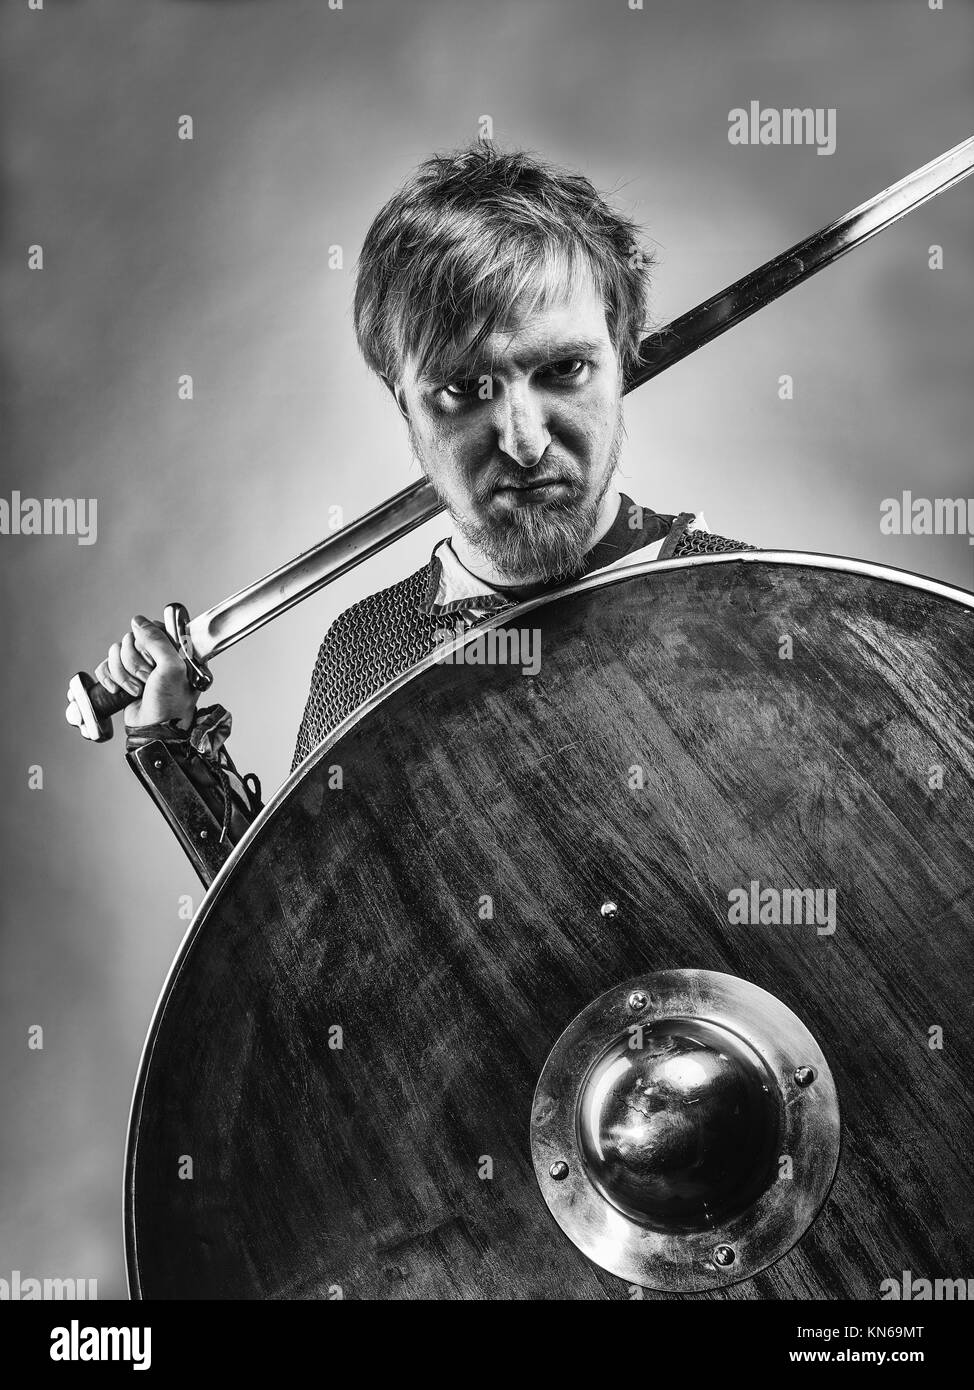 Angry medieval knight armor with a sword and shield, black and white image. - Stock Image